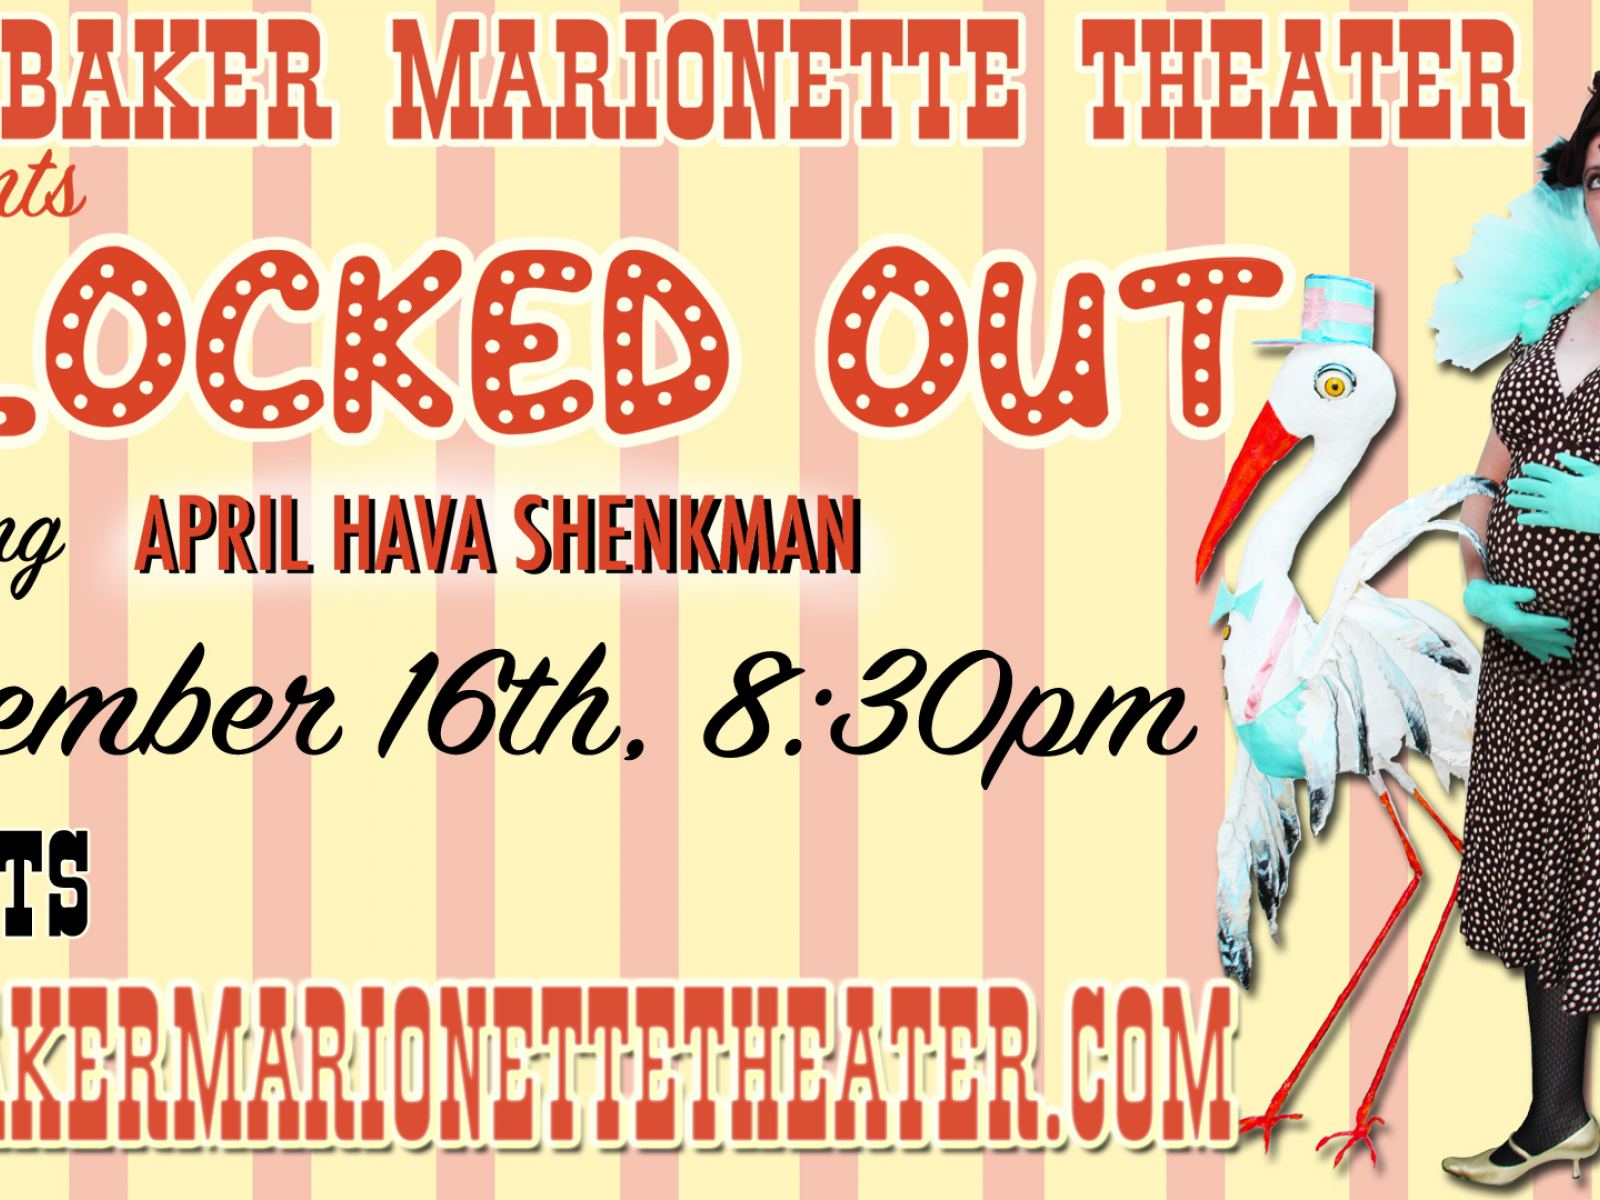 April Hava Shenkman's comedy Special FLOCKED OUT November 16th at Bob Baker Marionette Theater